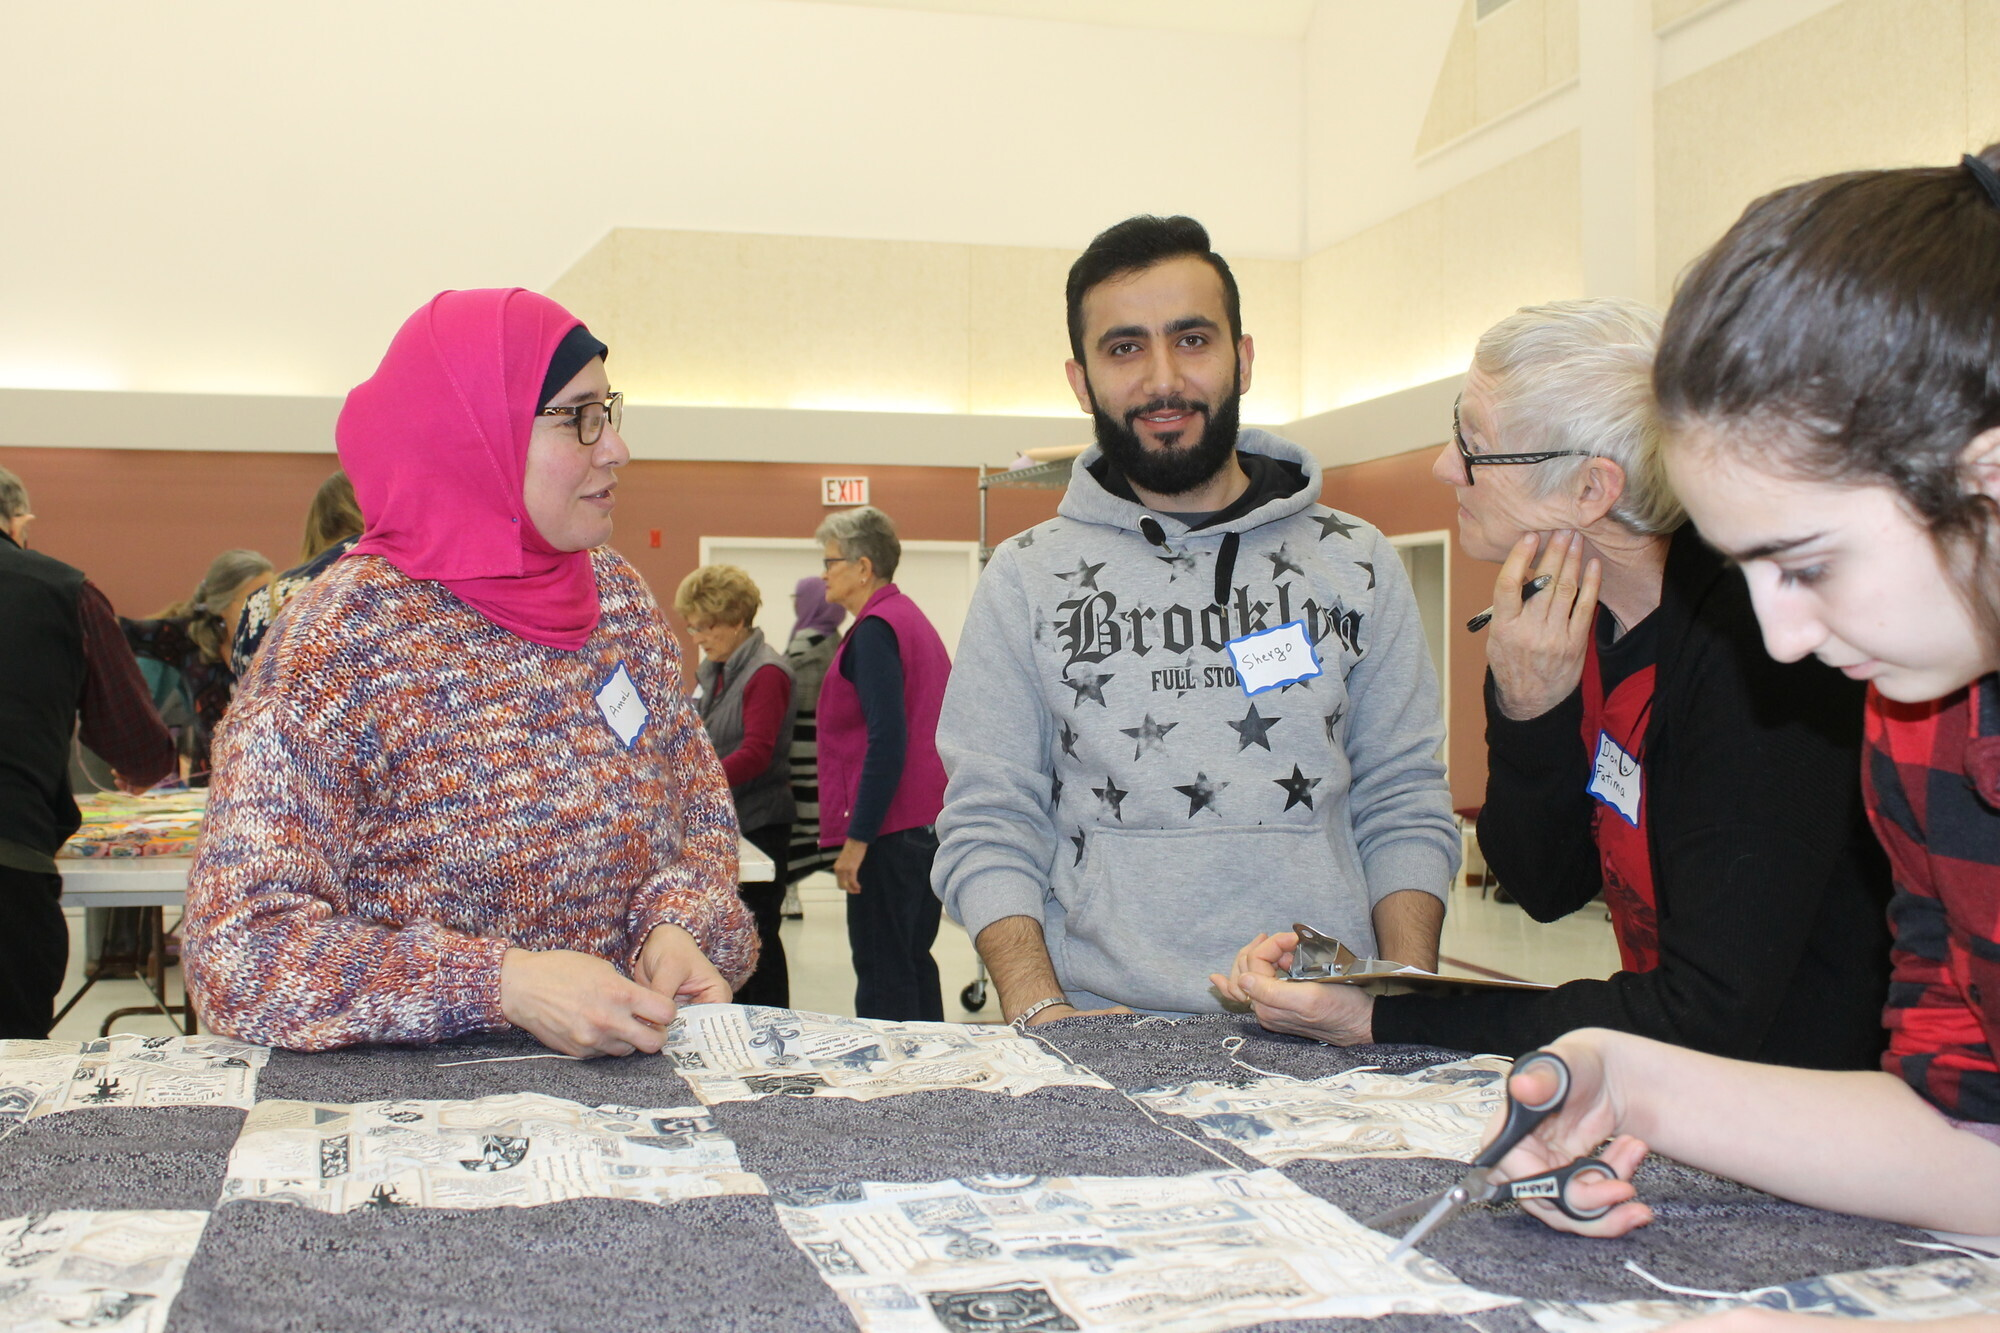 Amal Abujayyab, Shergo Ibrahim, Donna Entz and Sedra Mustafa work on a comforter together  at The Great Winter Warm-up event in Edmonton, Alta. (MCC photo/Donita Wiebe-Neufeld).